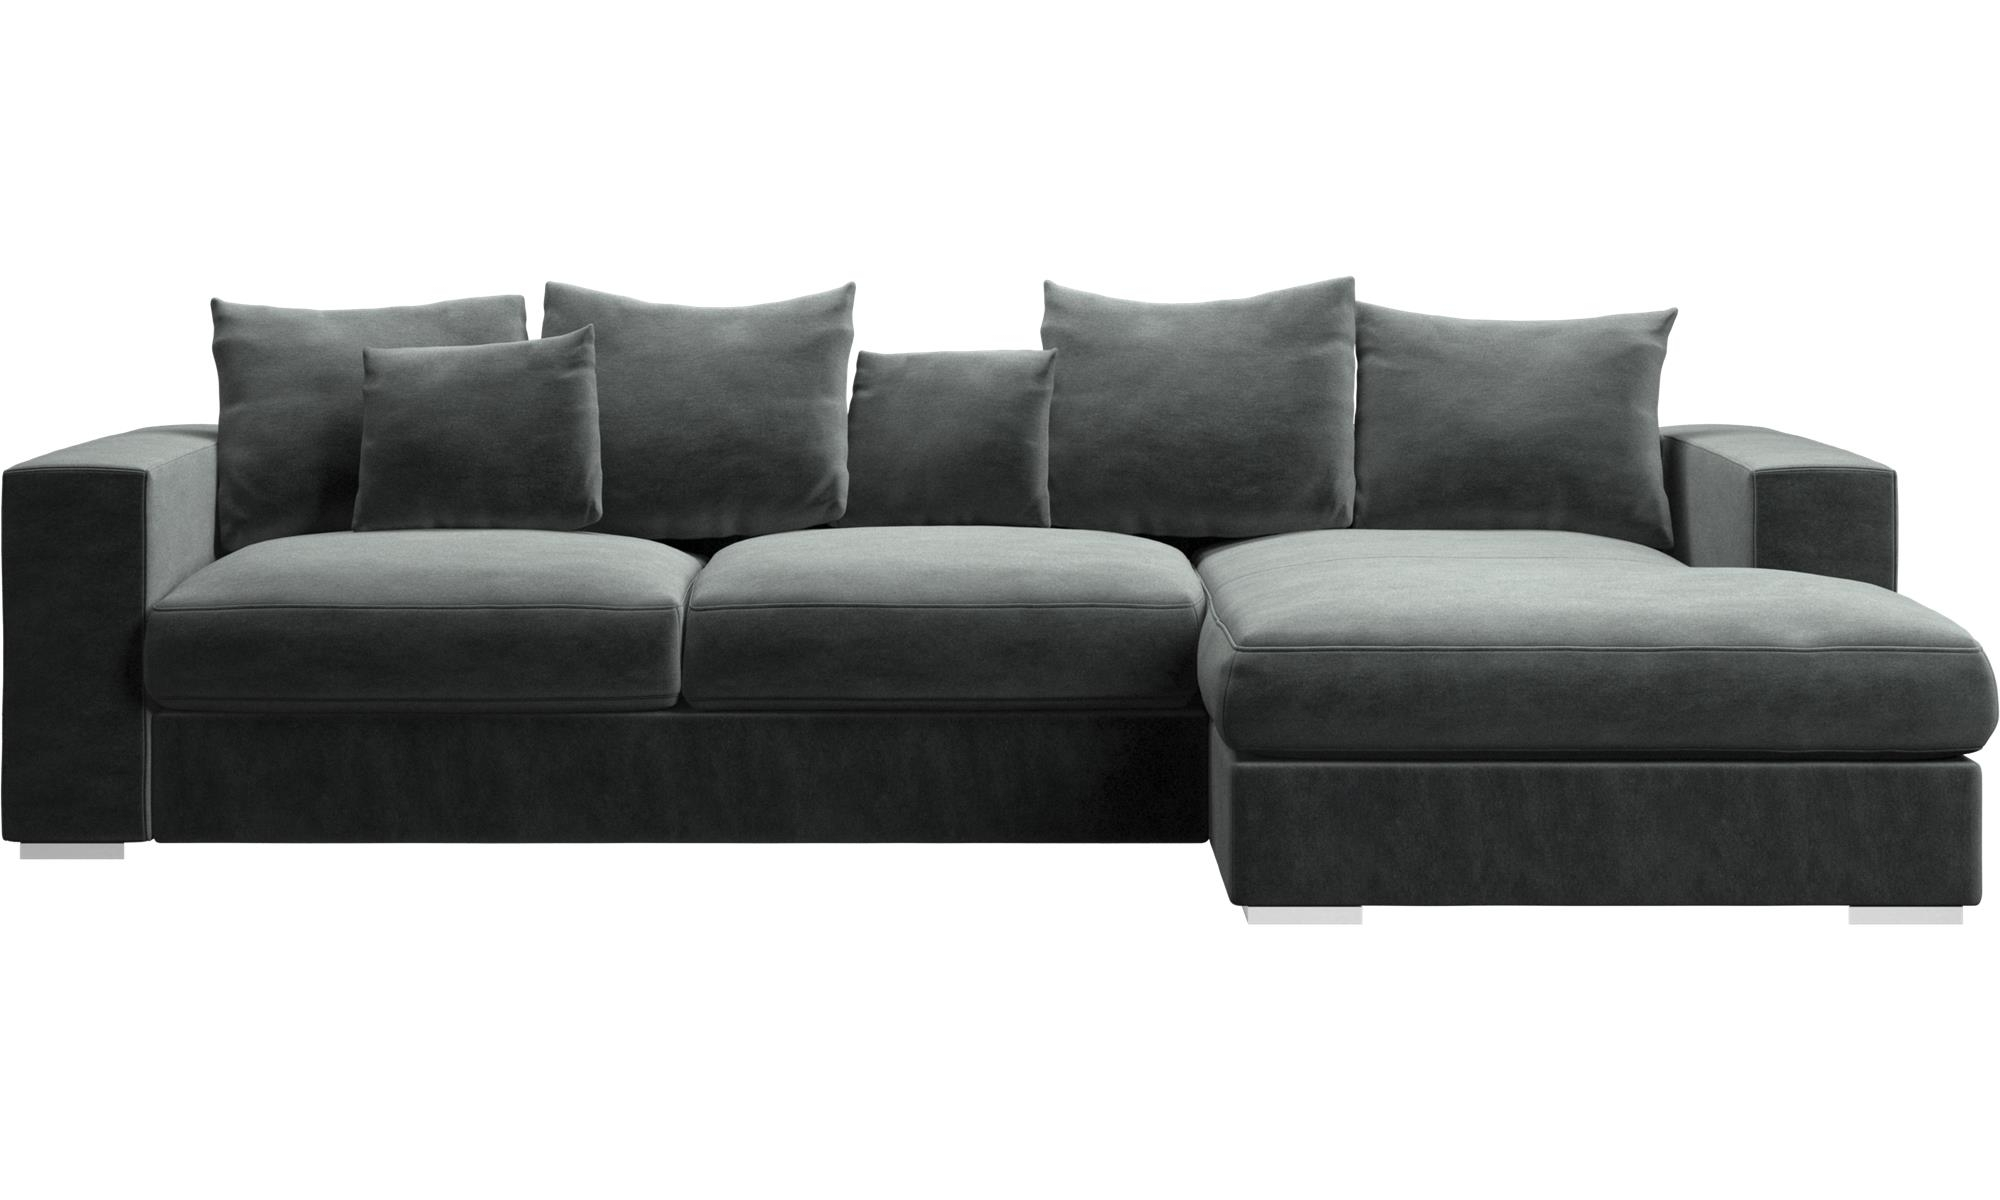 Favorite Chaise Lounge Couches Regarding Chaise Lounge Sofas – Cenova Sofa With Resting Unit – Boconcept (View 10 of 15)